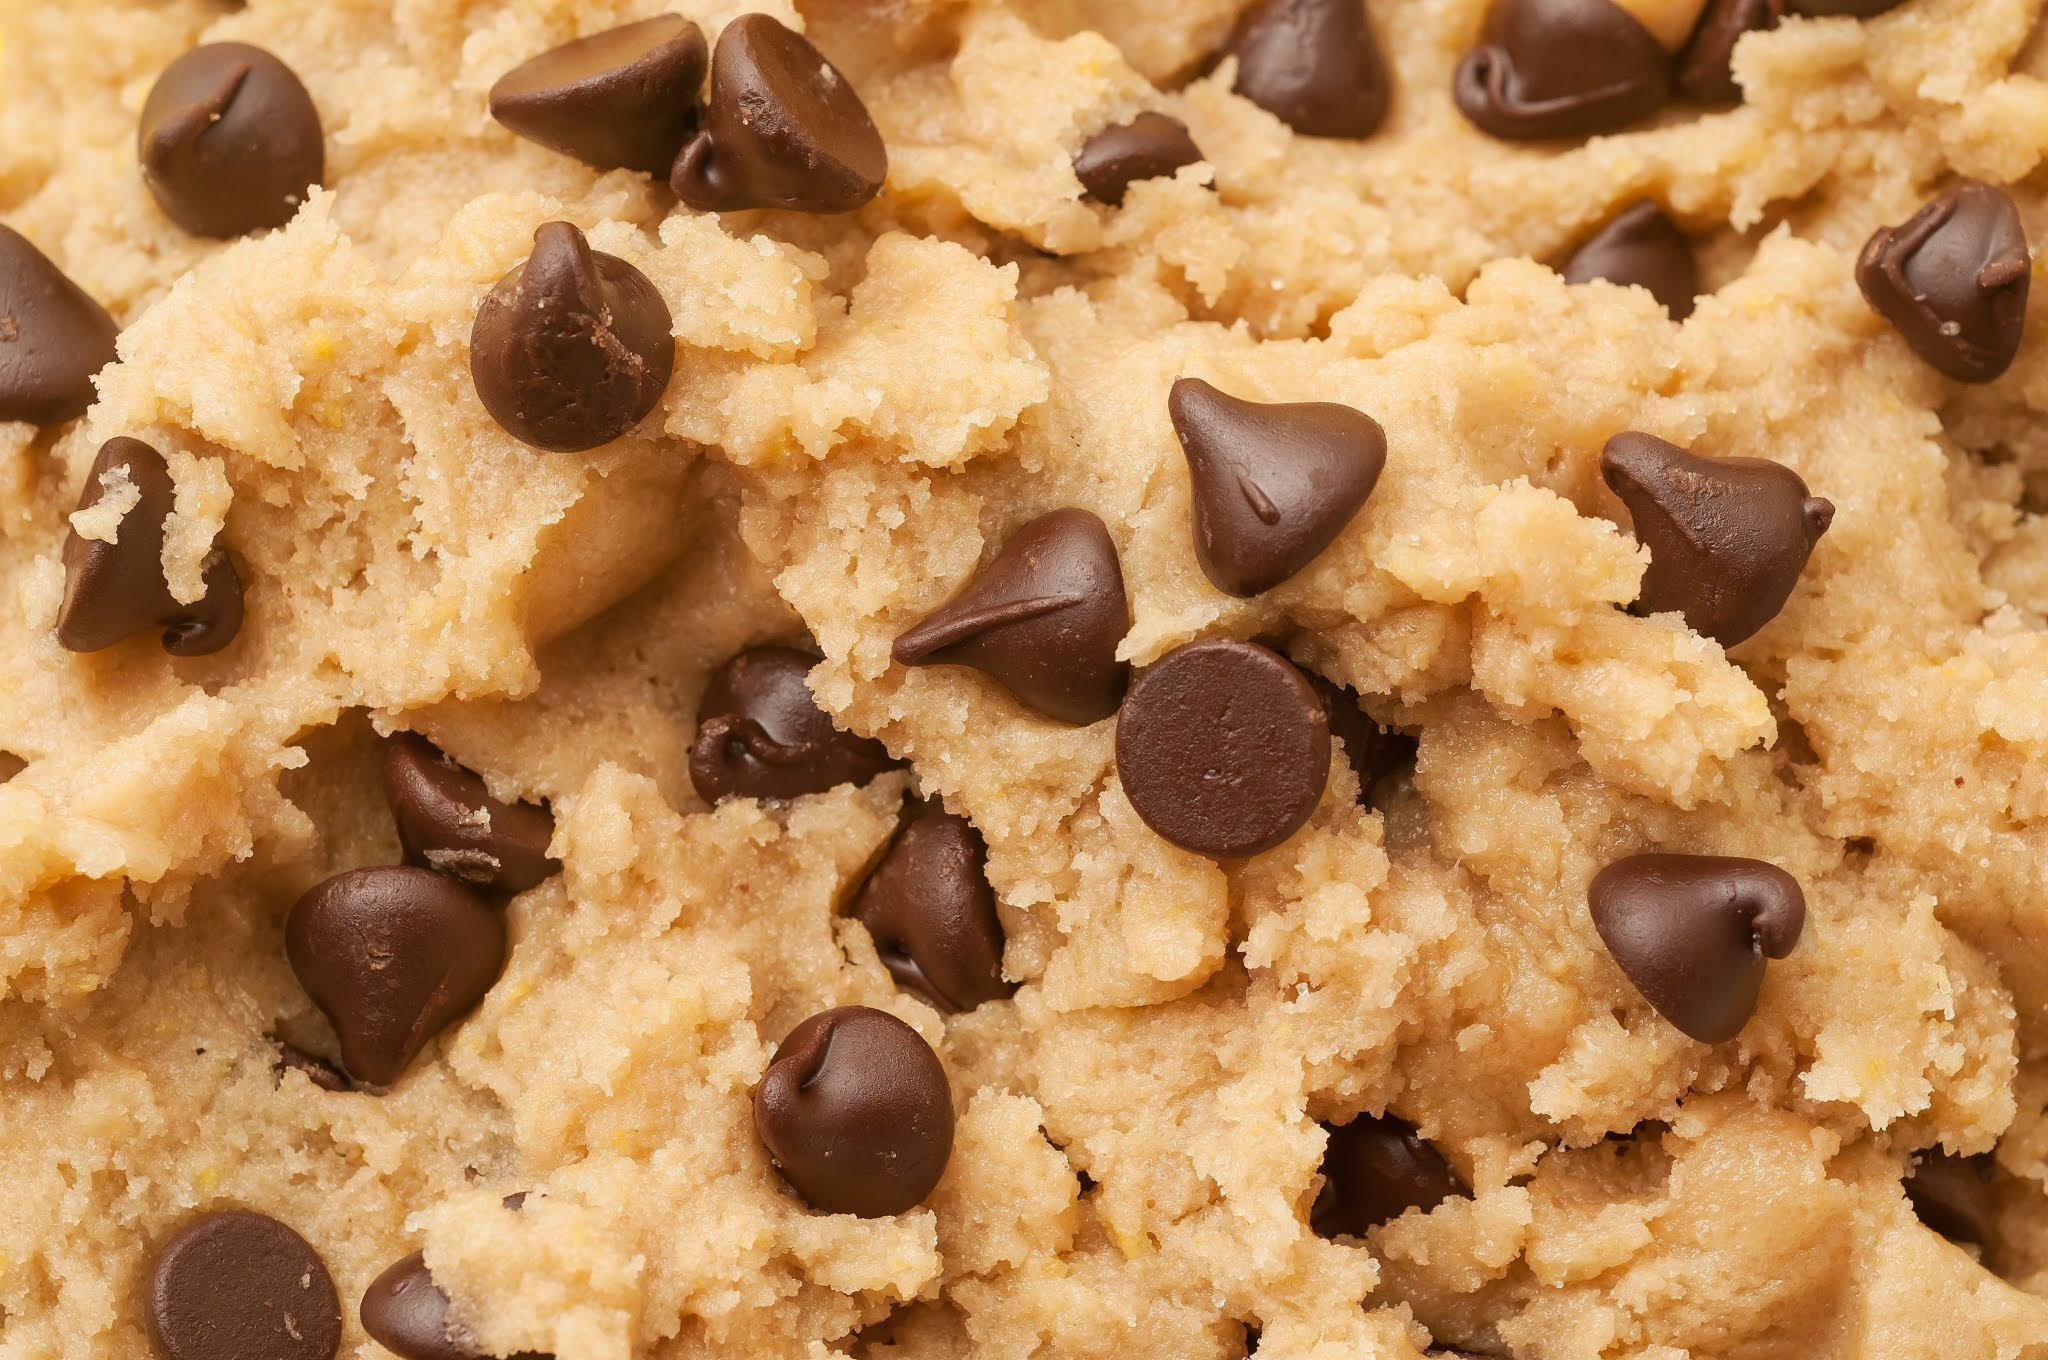 This New York bakery is offering take-home cookie dough